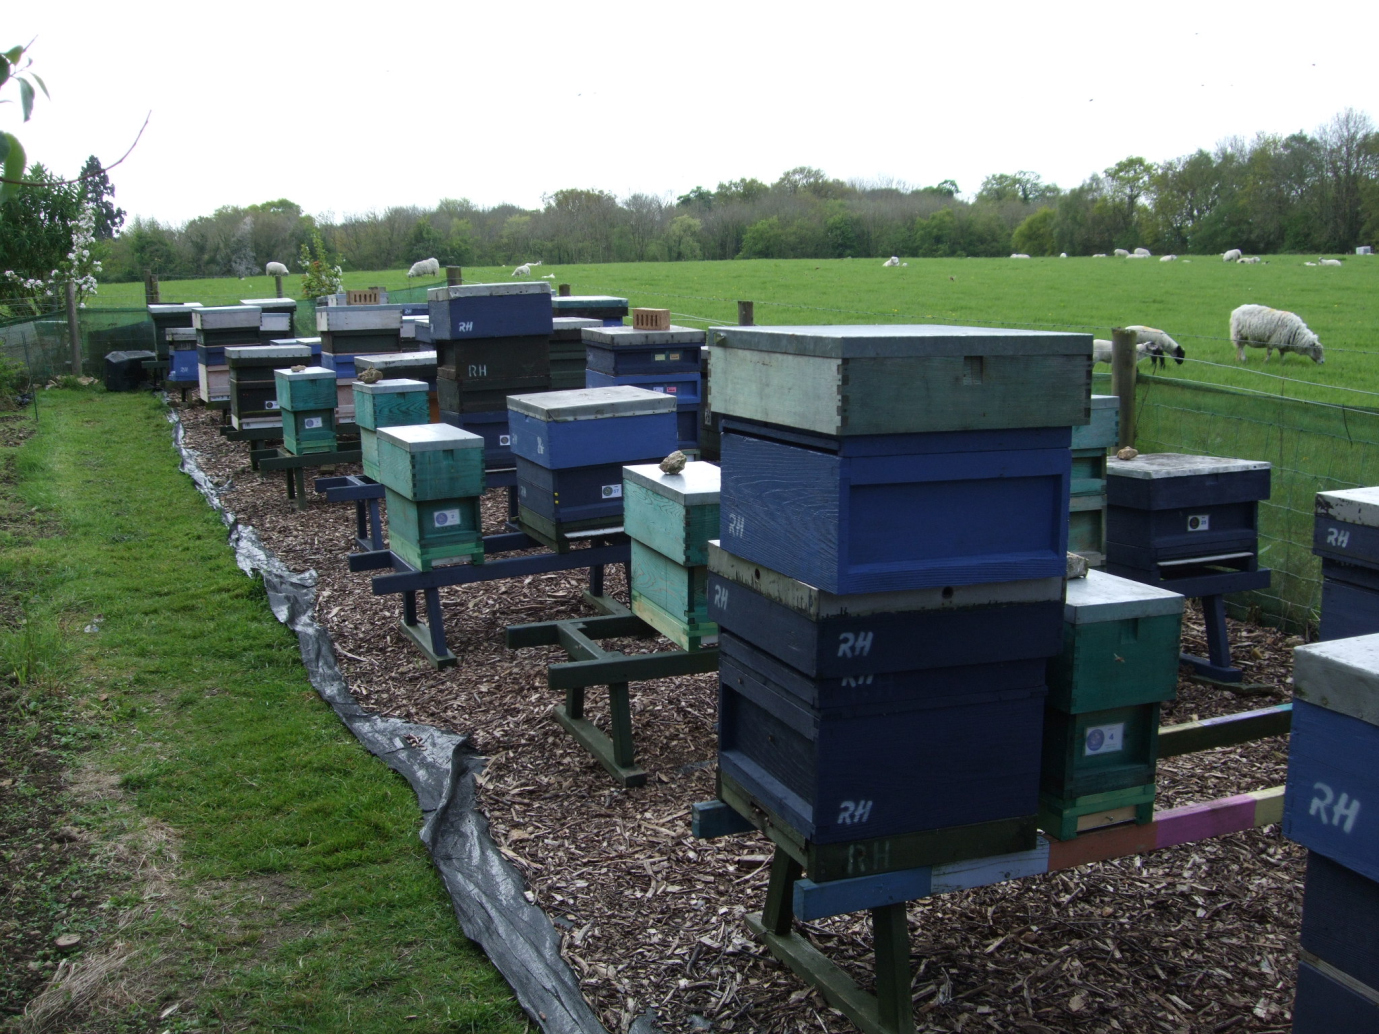 Some of RonHoskins's hives at his apiary at Stanton